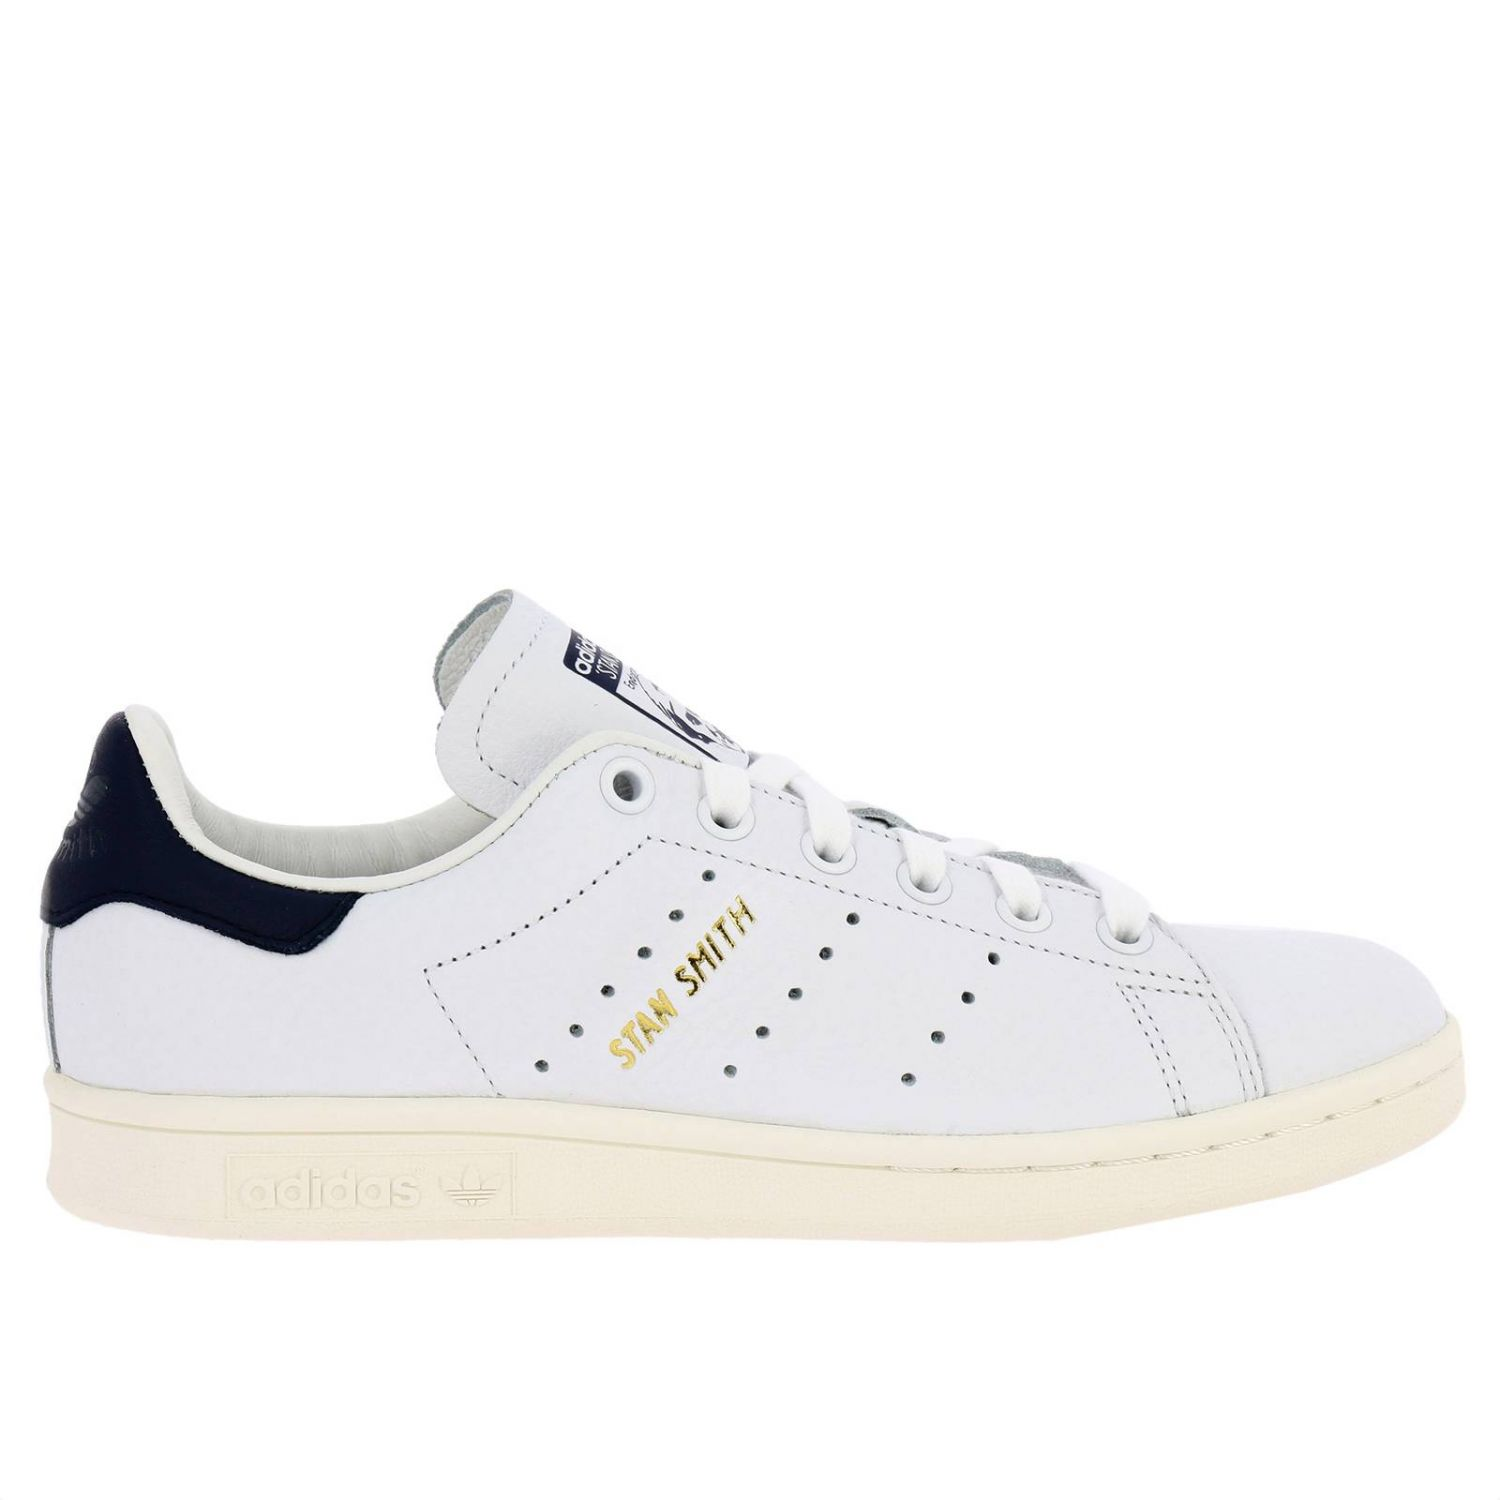 Sneakers Adidas Originals: Sneakers Stan Smith Adidas Originals in pelle con tallone a contrasto bianco 1